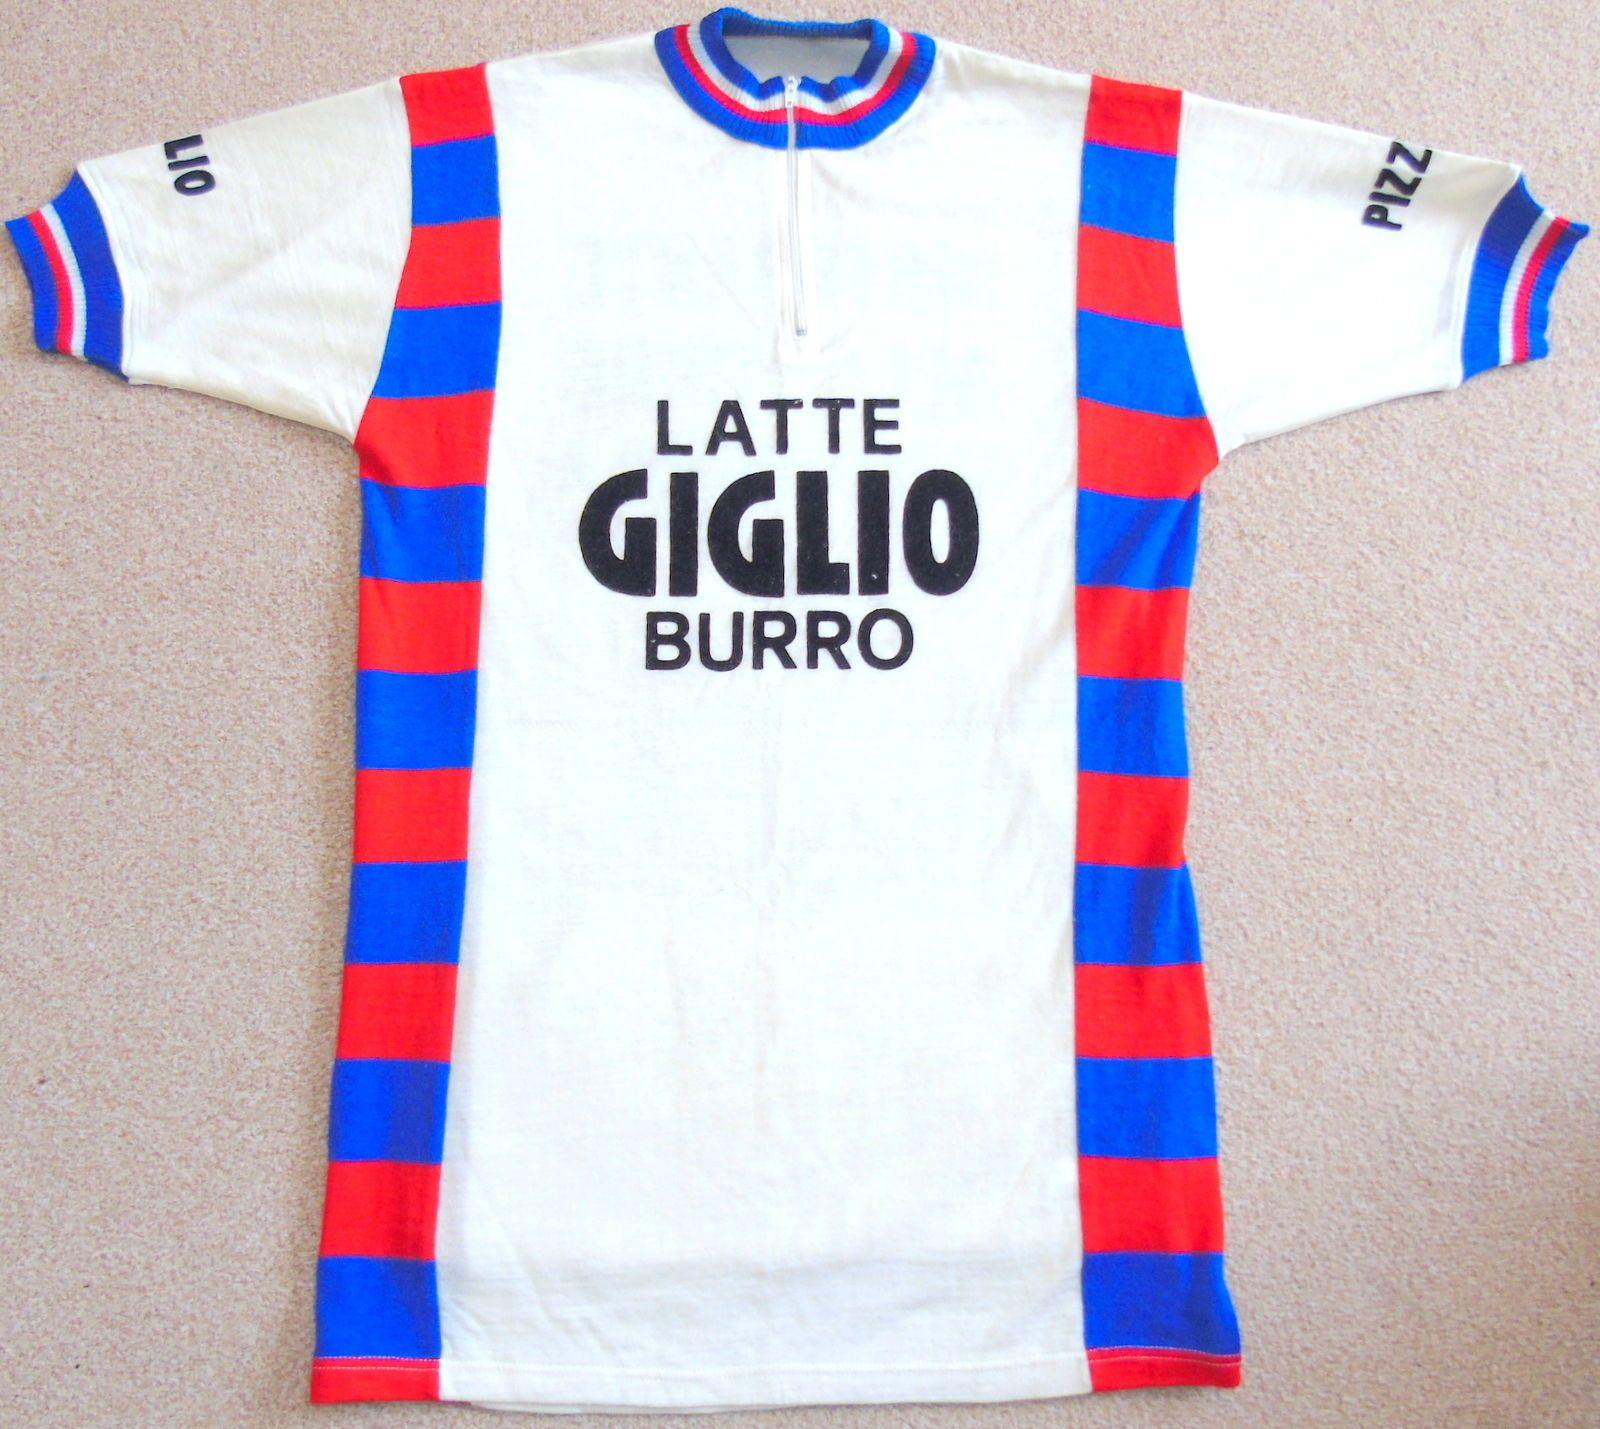 c85411c9f Biking · Cycling Gear · VERY GOOD CONDITION 1970 S WOOL TEAM JERSEY FOR  EROICA. LARGE   EXTRA LARGE